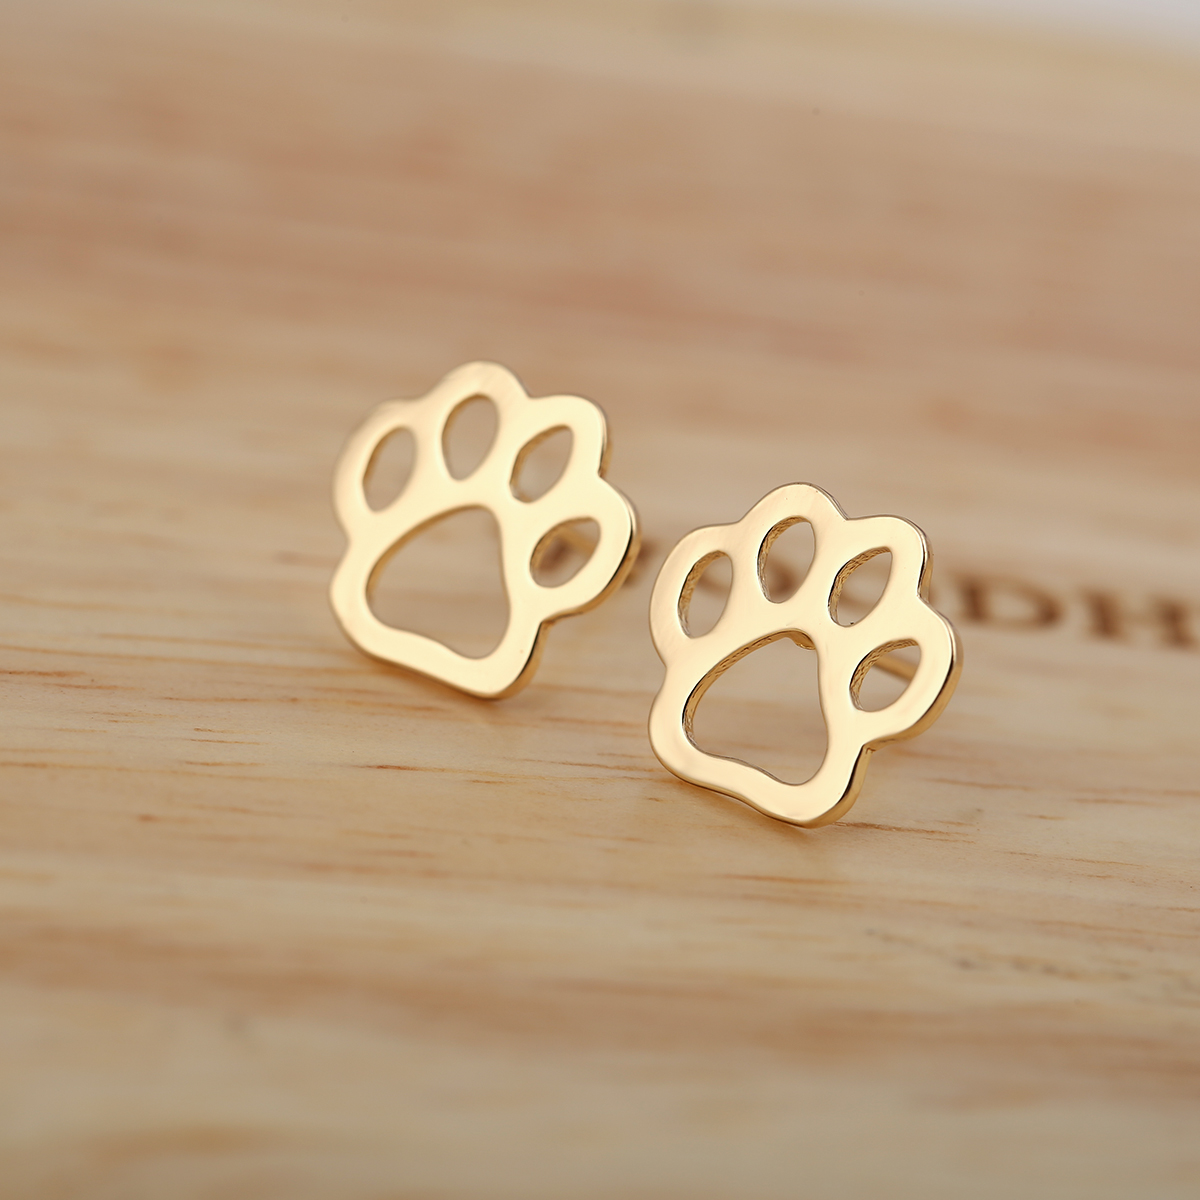 animal print cute cat item earrings women girl paw girls earring gift dog stud fashion